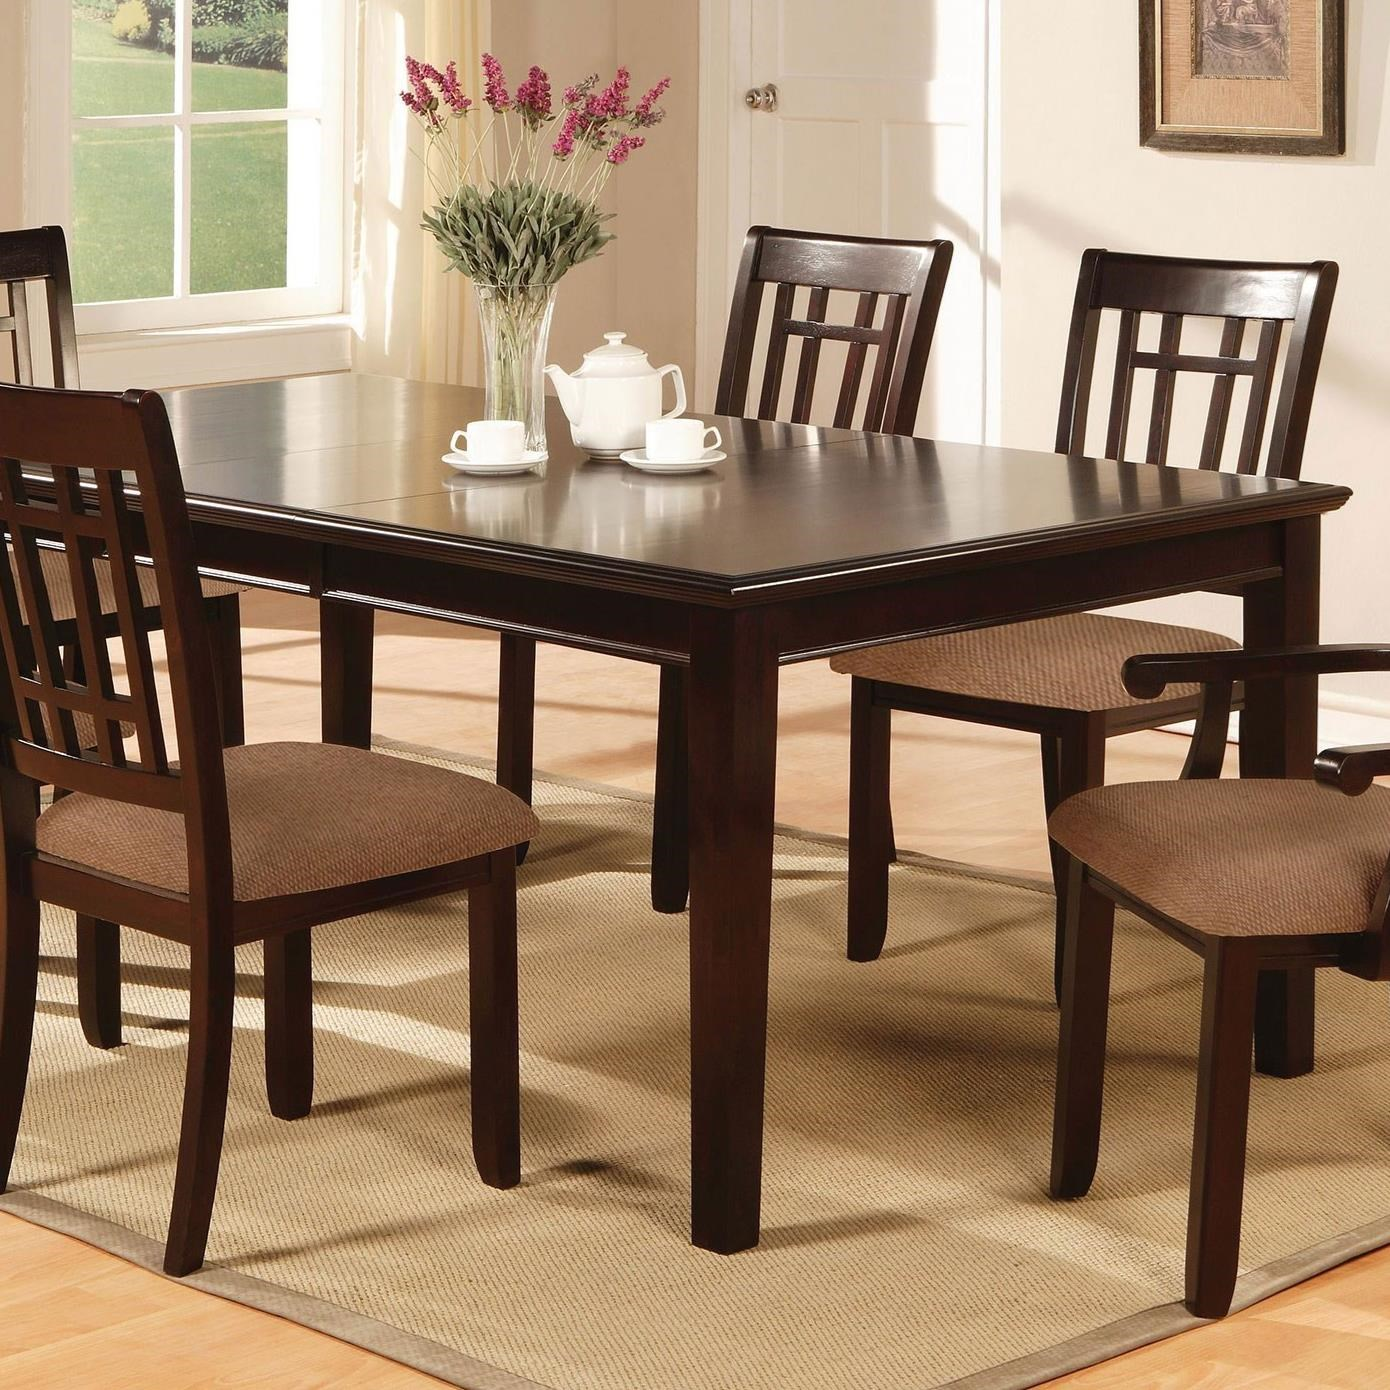 Central Park I Dining Table at Household Furniture